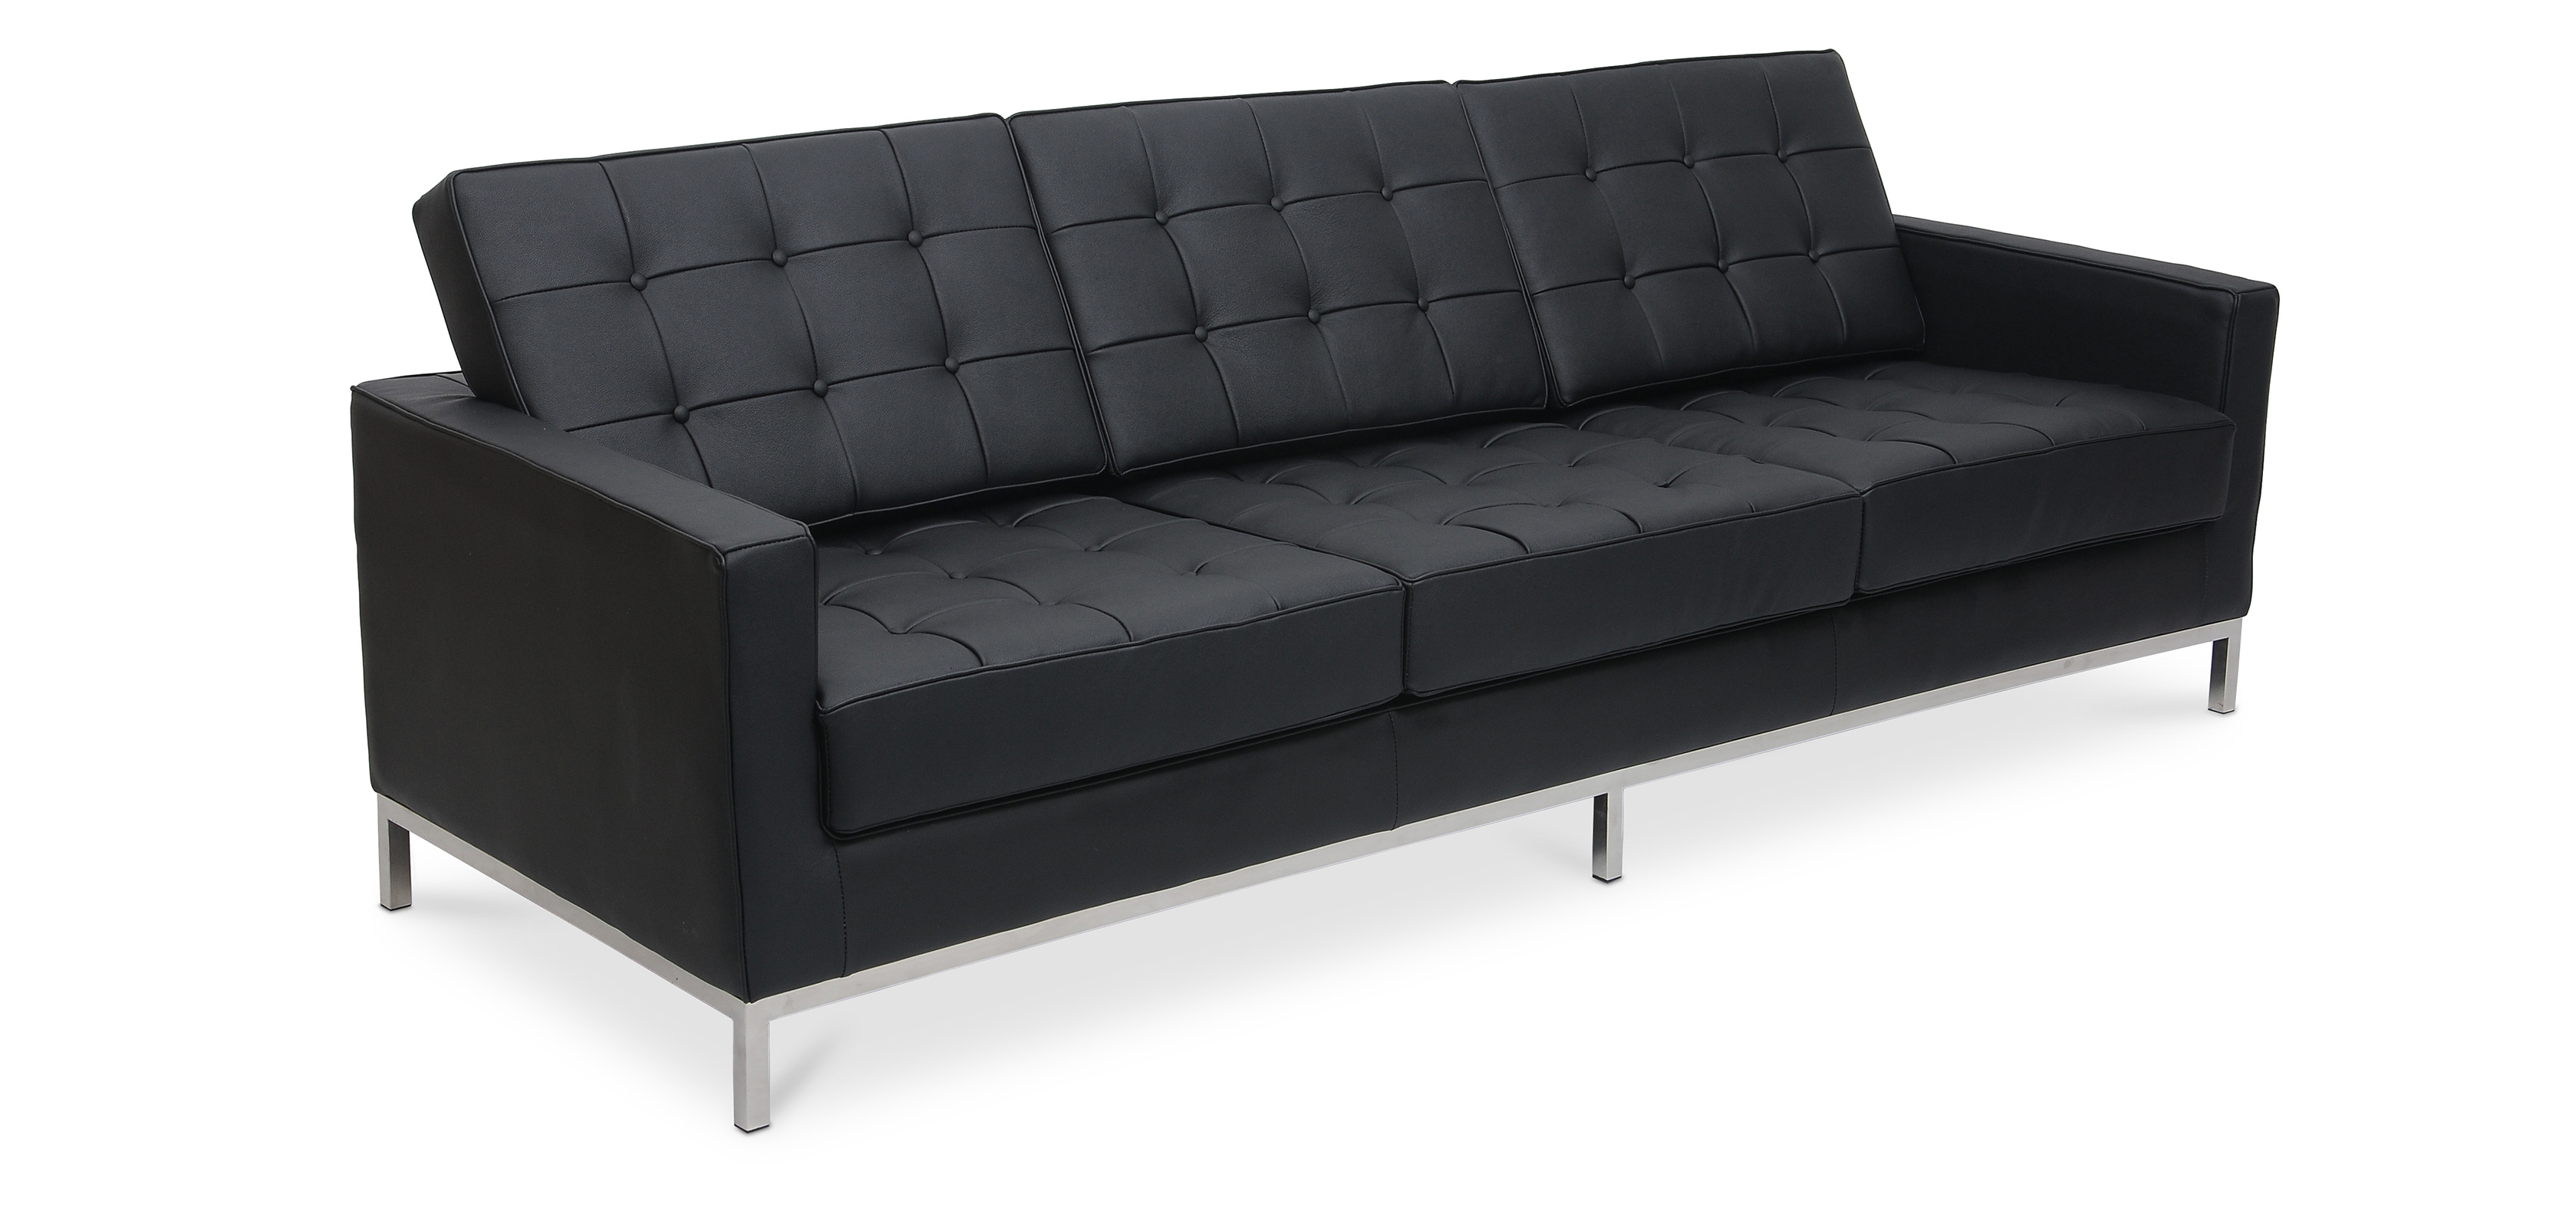 design sofa florence knoll dreisitzer hochwertiges leder. Black Bedroom Furniture Sets. Home Design Ideas